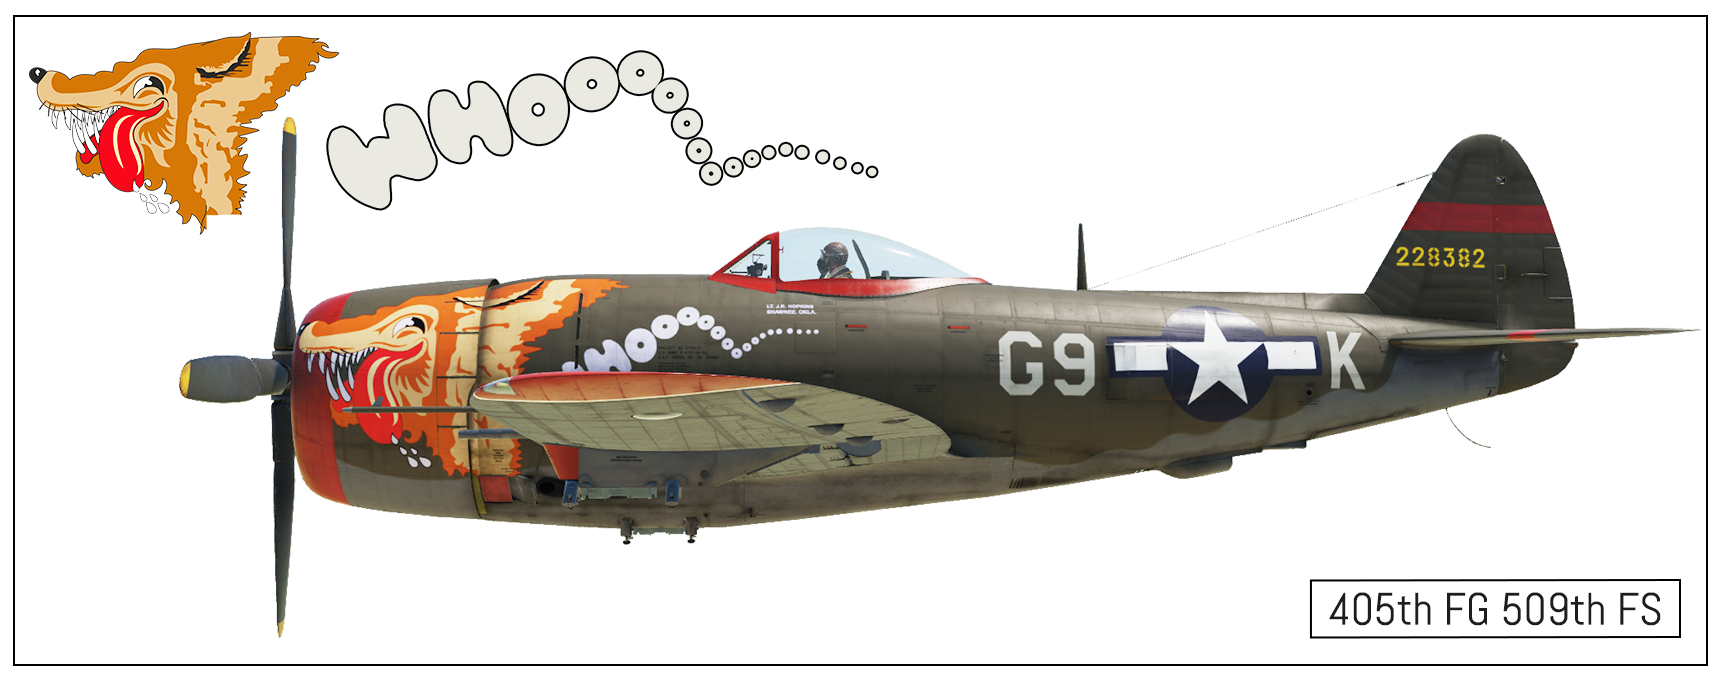 "P-47D 405th FG 509th FS, Belgium, 1945 ""Whoooo"" *(FINAL)*"